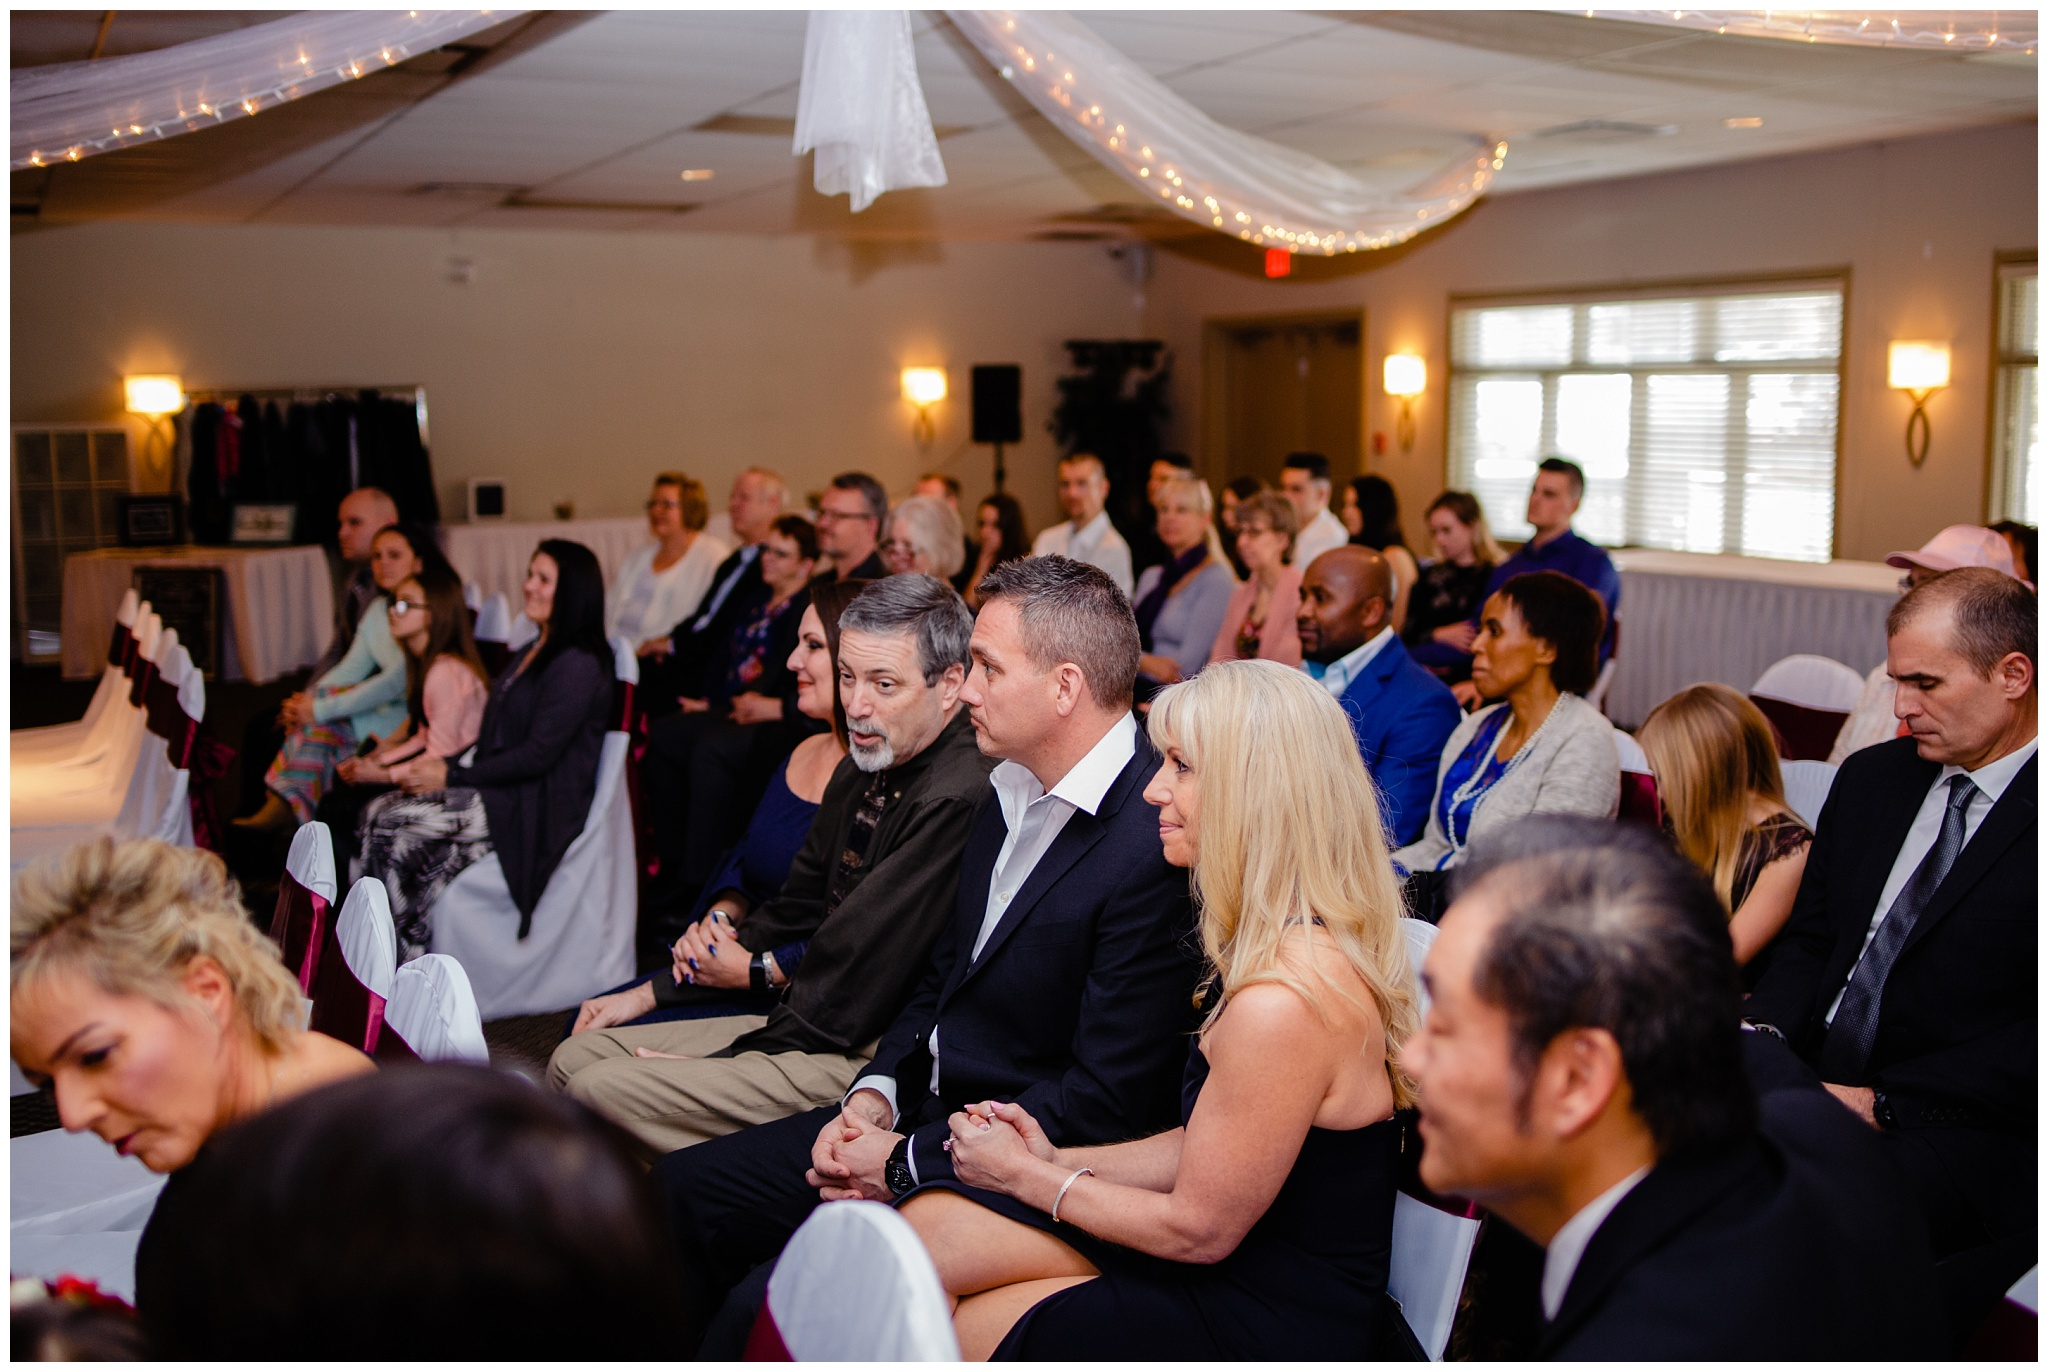 White Rock Intimate Wedding 5 Star Catering Venue Surrey BC Middle Aged Couple_0026.jpg